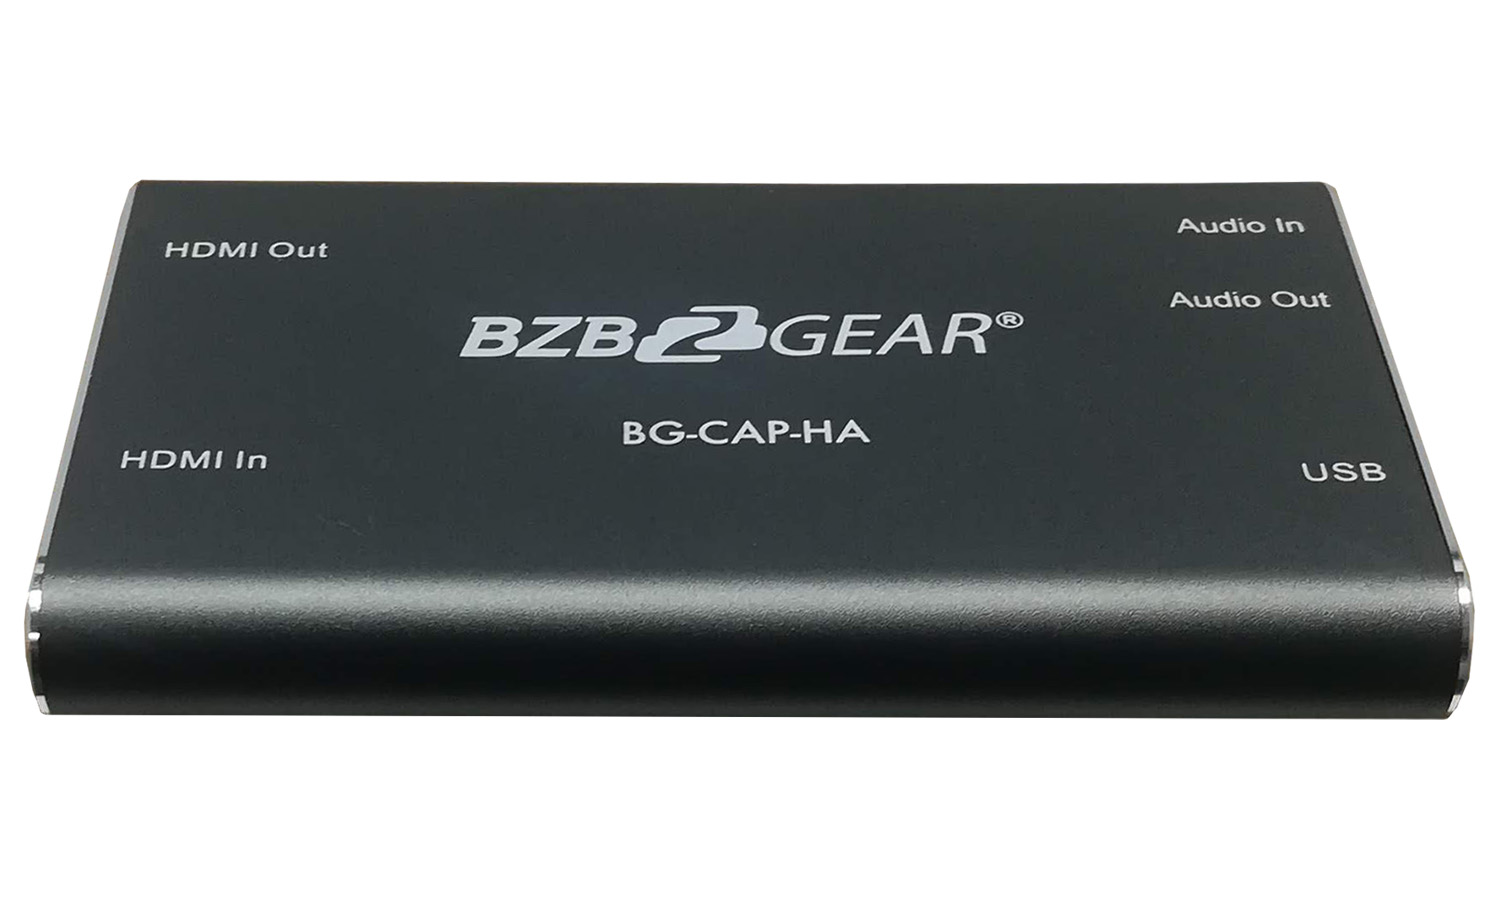 BZBGEAR BG-CAP-HA USB 3.0 Powered HDMI Capture Device